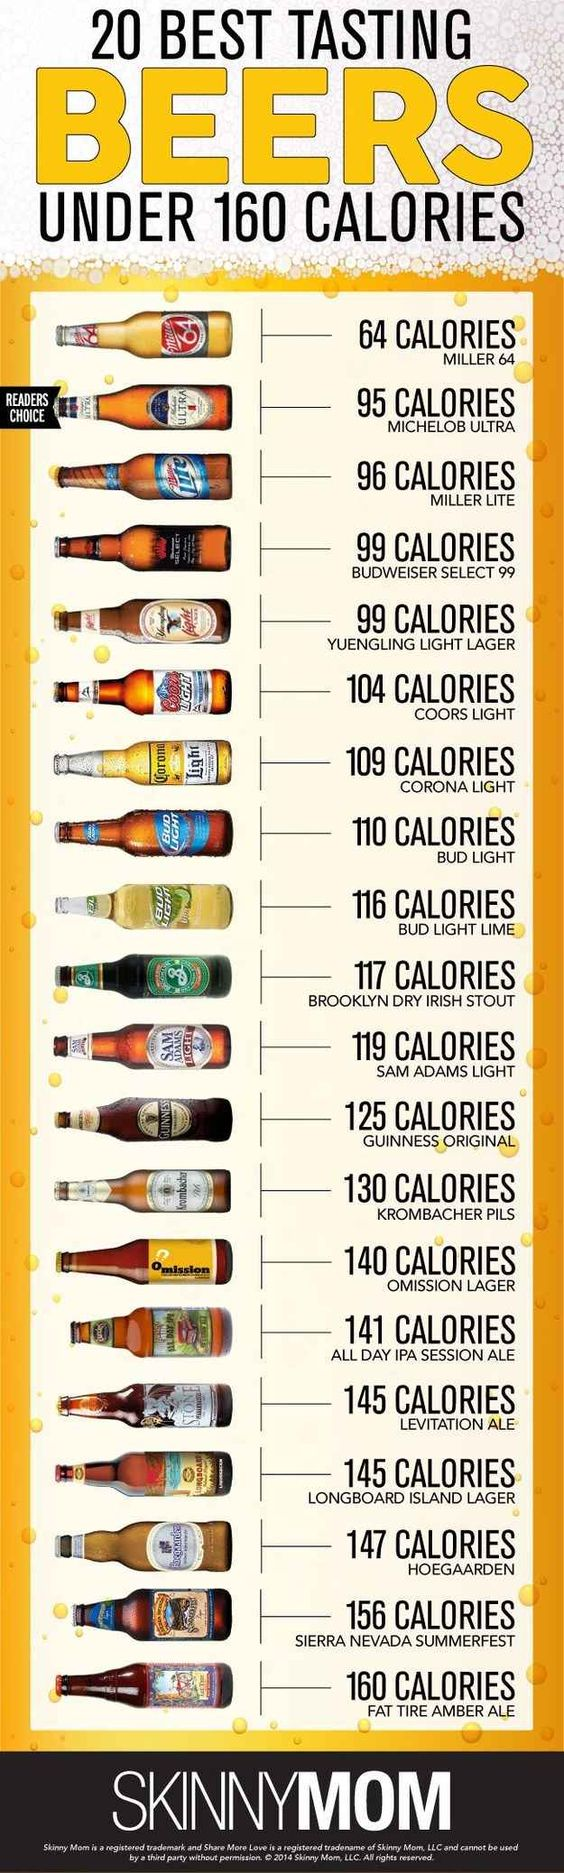 26++ Low calorie craft beer ireland ideas in 2021